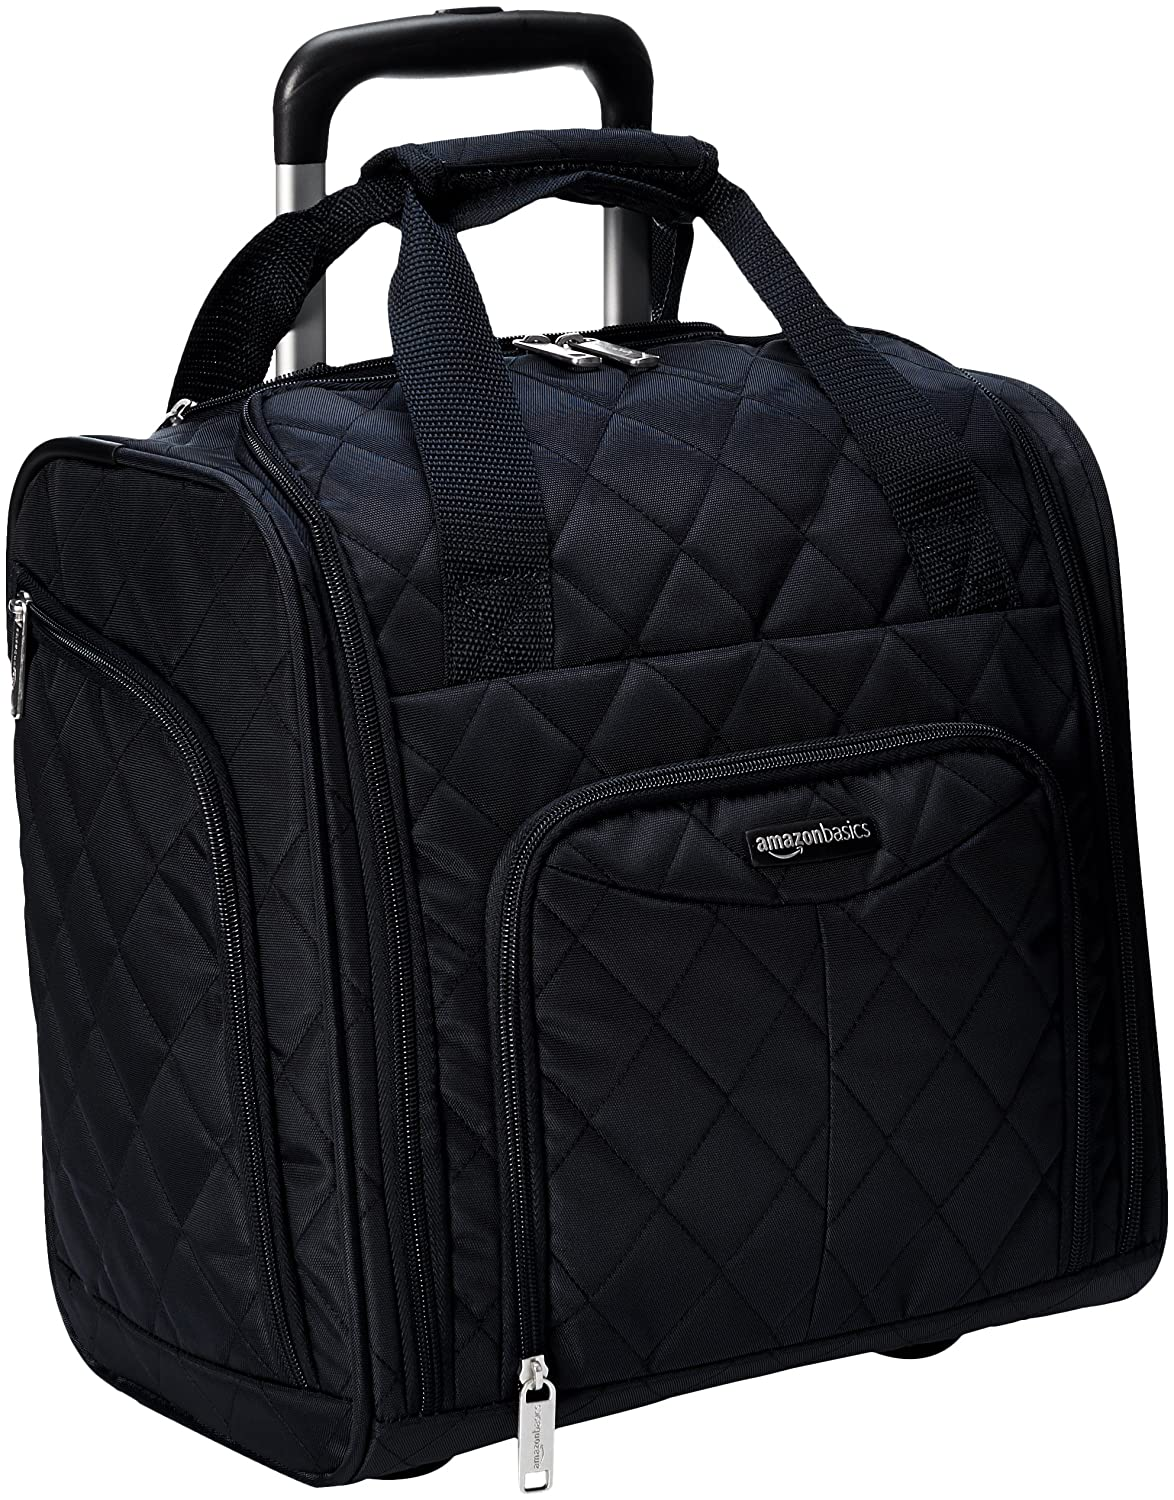 AmazonBasics Underseat Luggage